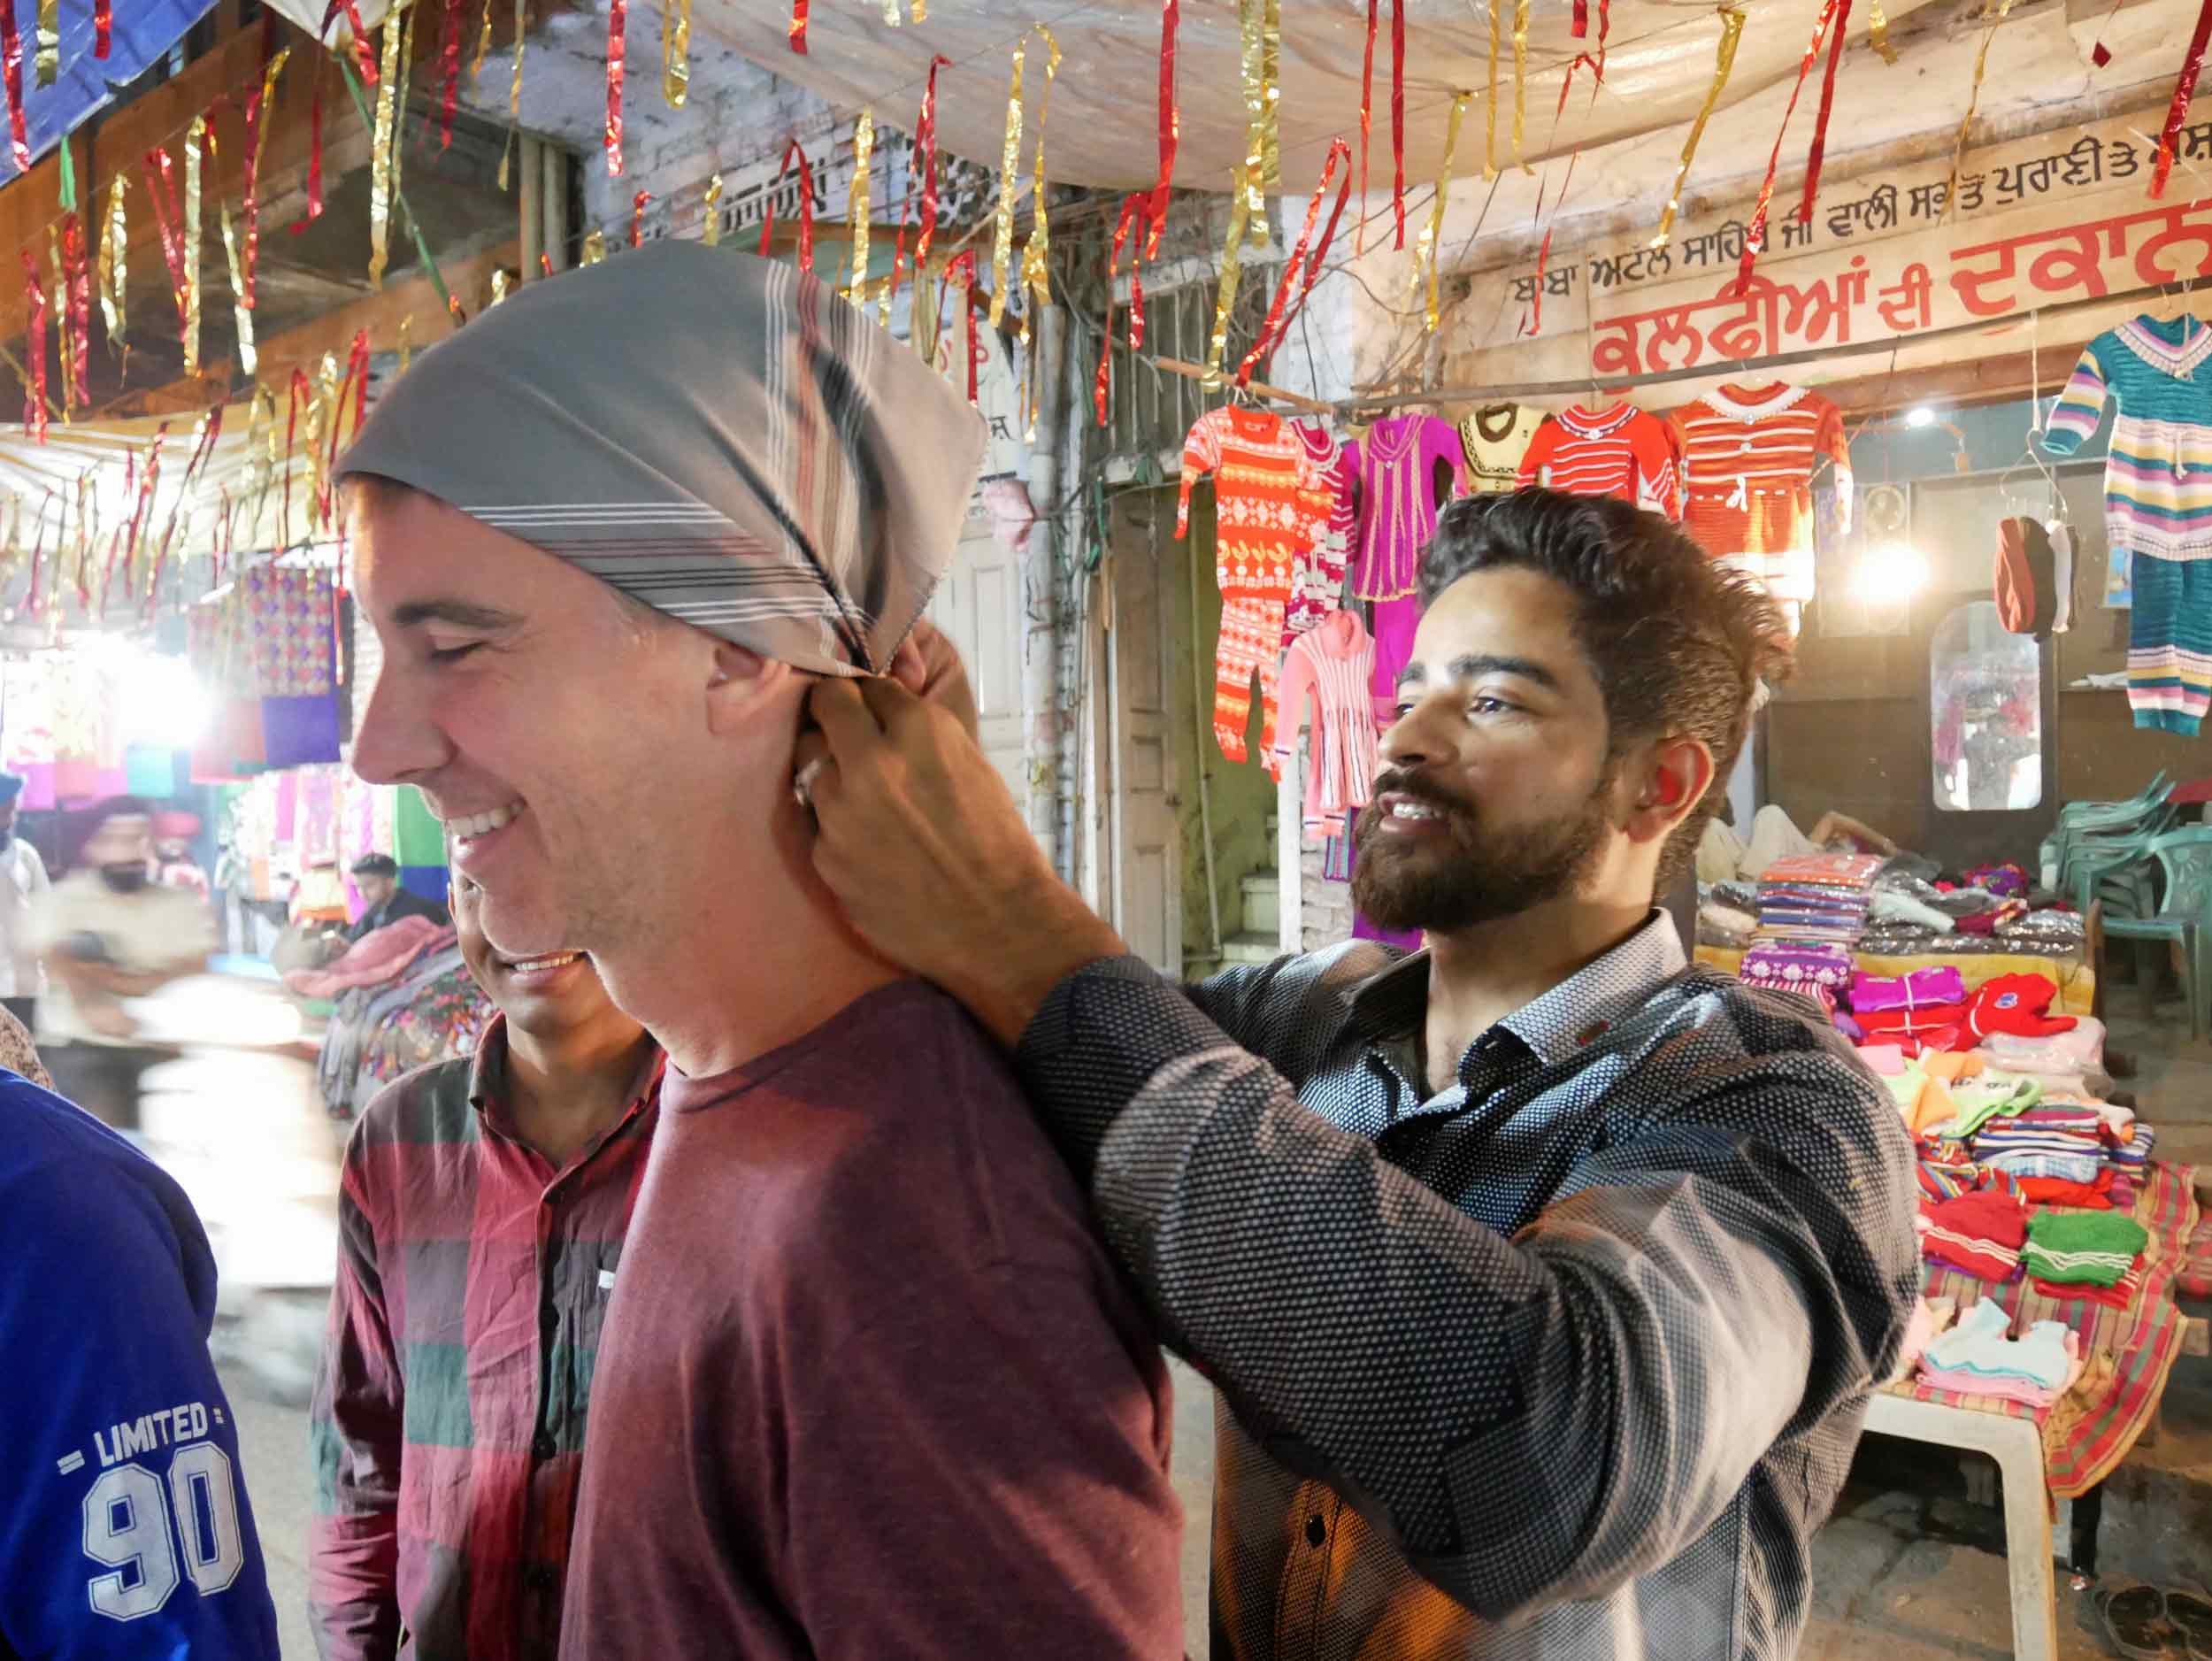 In order to enter the Golden Temple, men must cover their hair and remove their shoes – here, Trey gets fitted with a bandana.